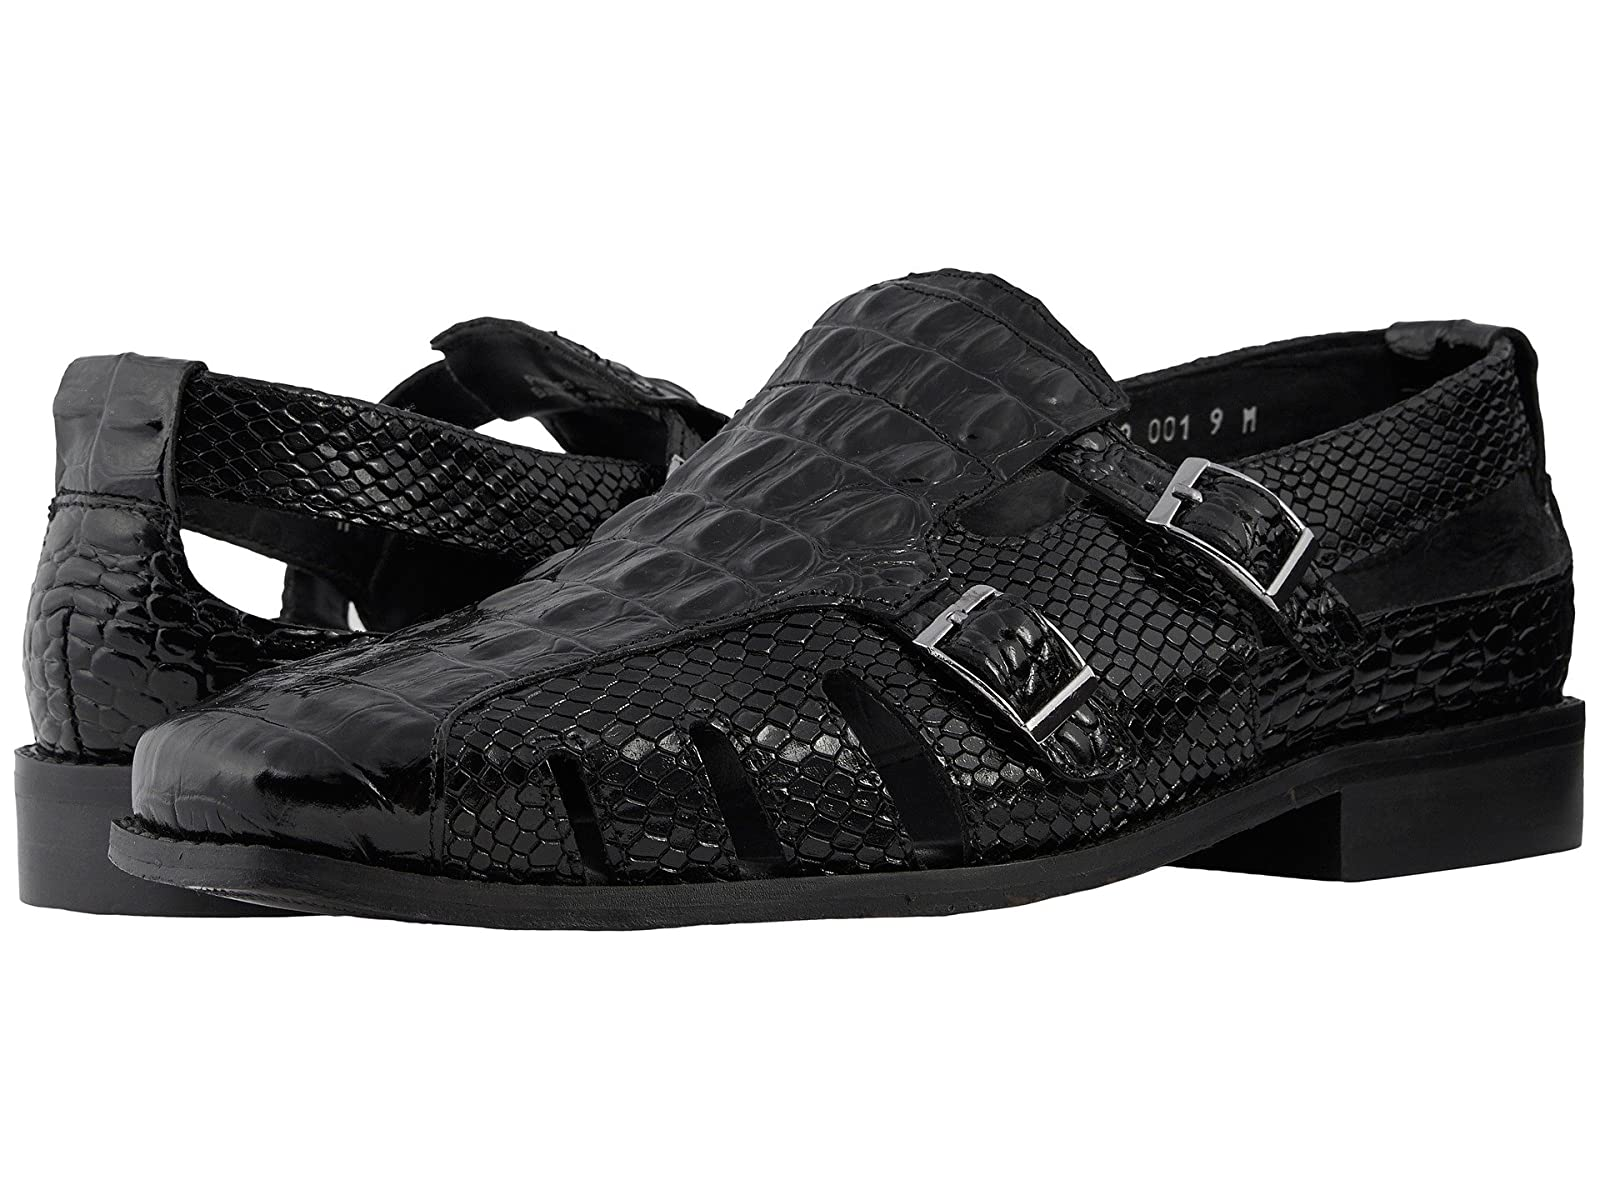 Stacy Adams SenecaAtmospheric grades have affordable shoes